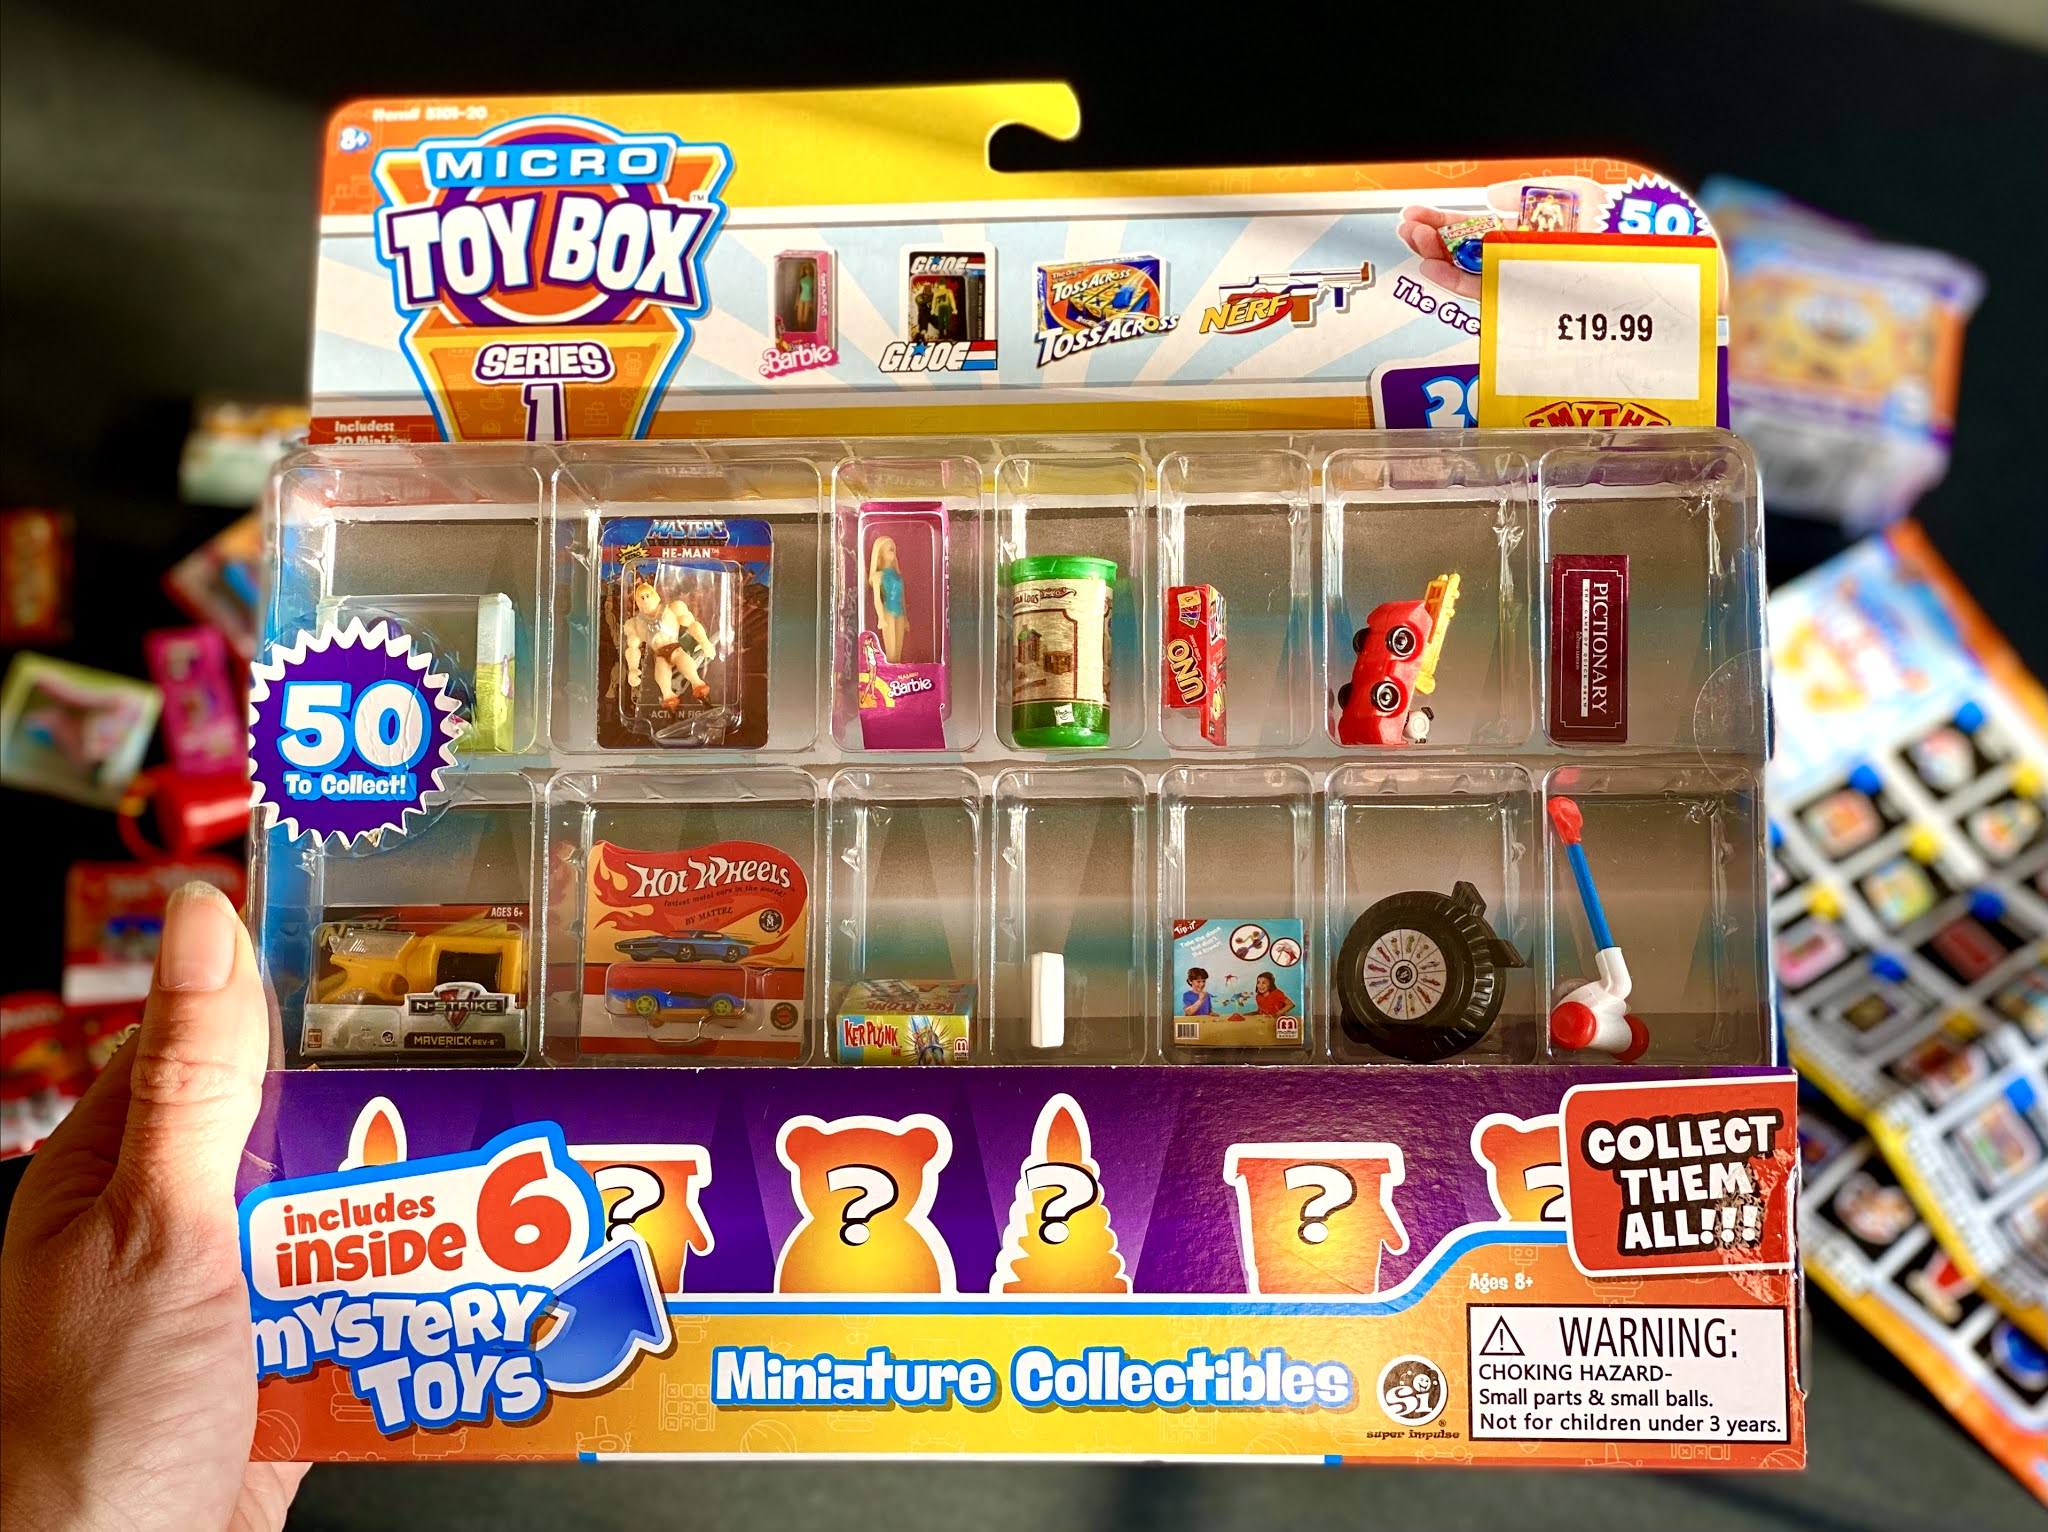 A 20 pack of Micro Toy Box collectibles being held